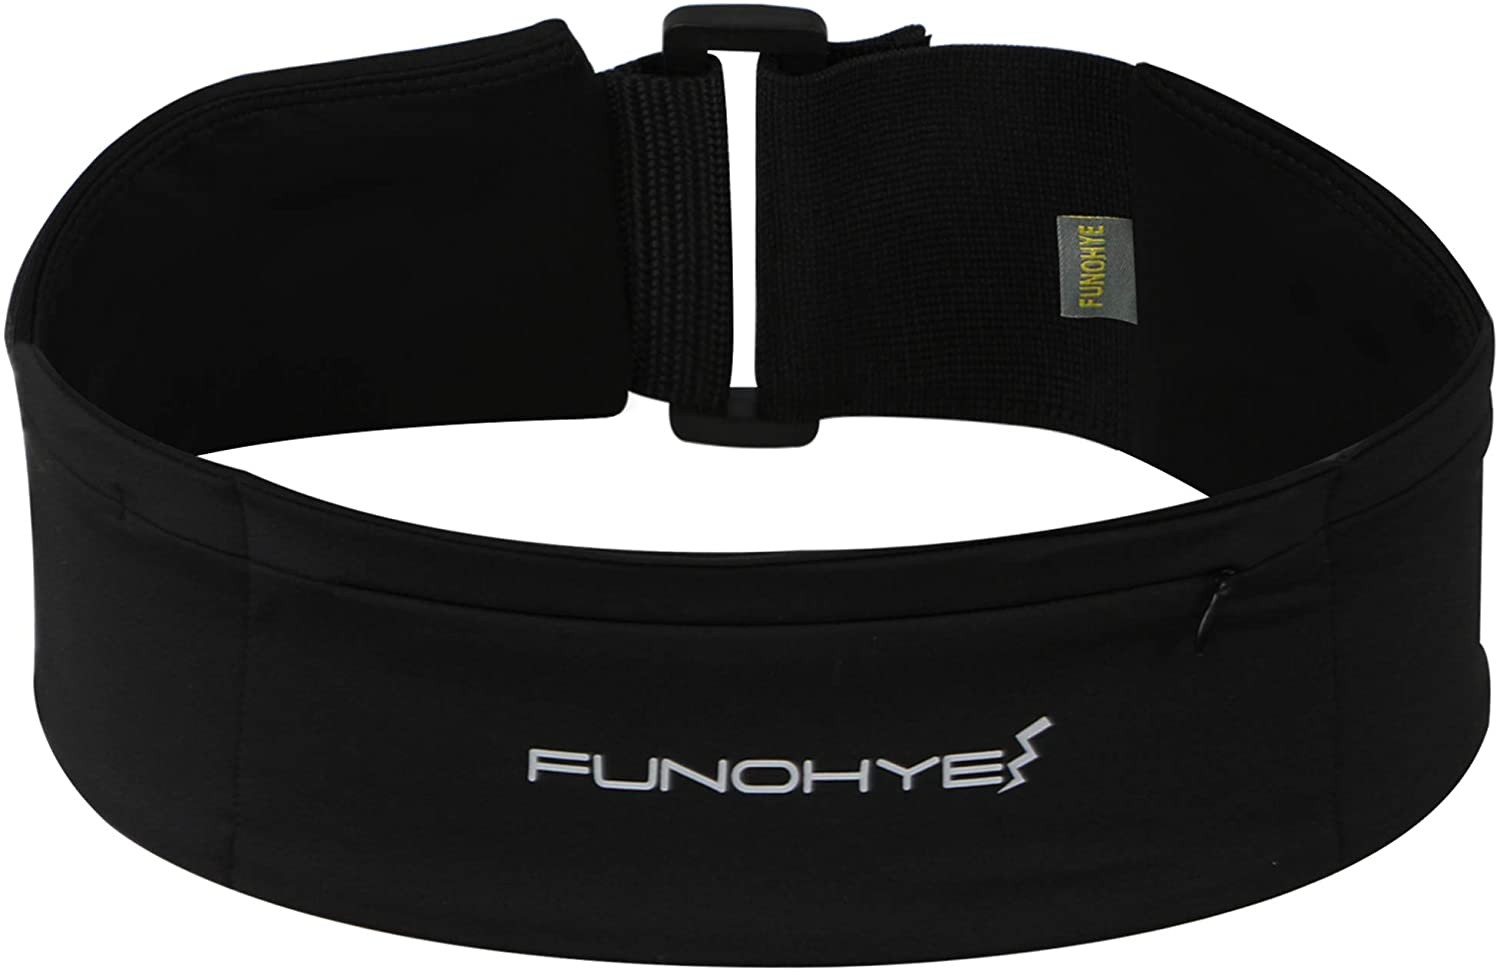 FUNOHYE Running Belt Waist Pack No-Bounce Adjustable Phone Pocket for All Kinds of Phones for Running Workouts Gym Yoga Cycling Rock Climbing Travelling and More